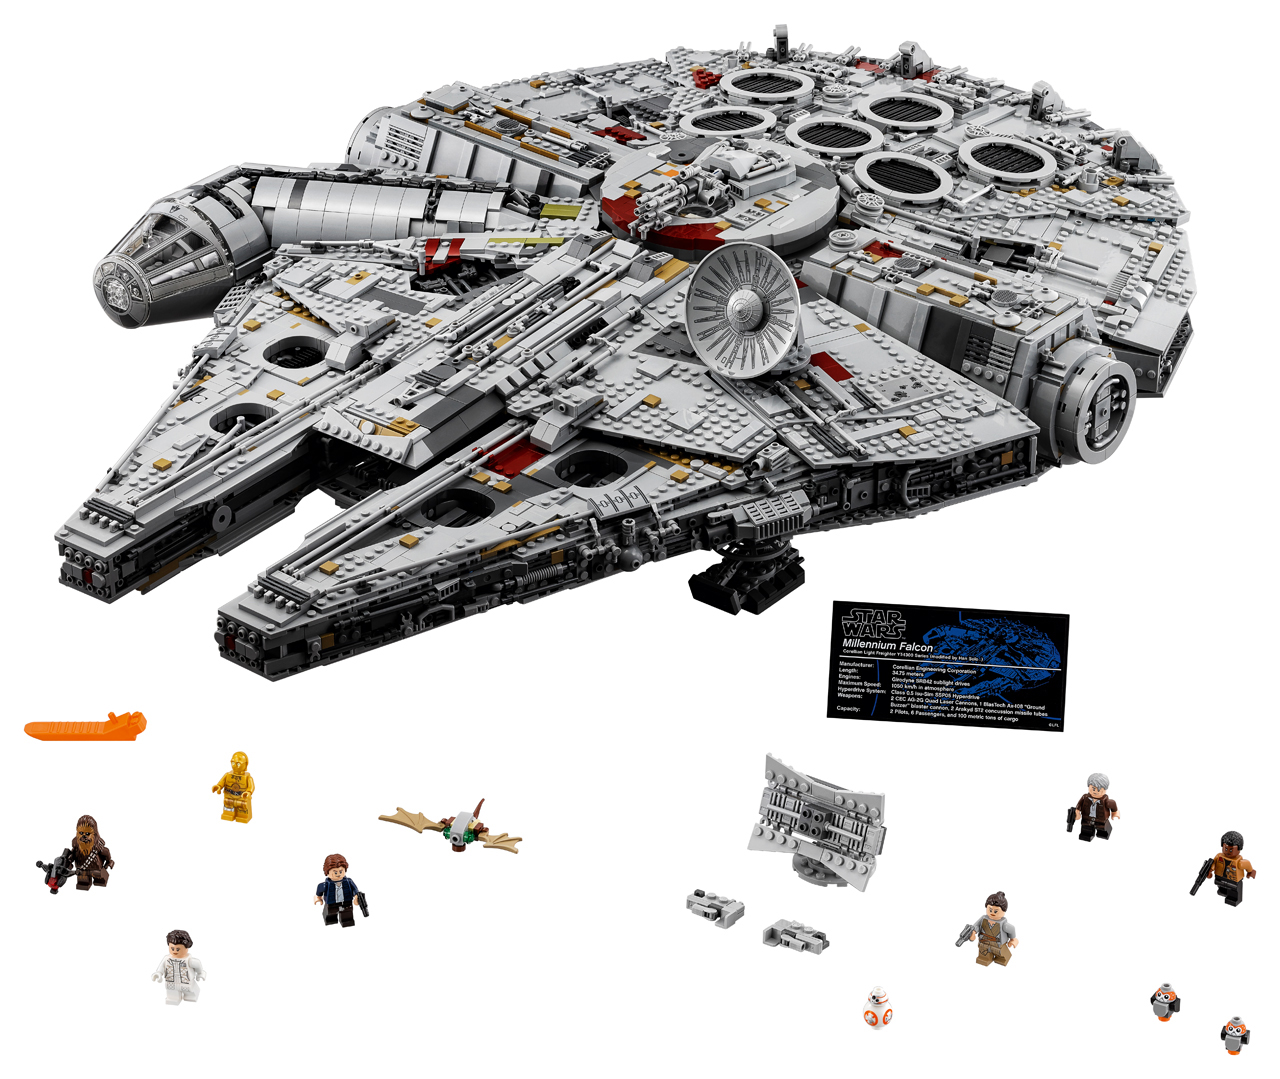 What LEGO Set has the Most Pieces